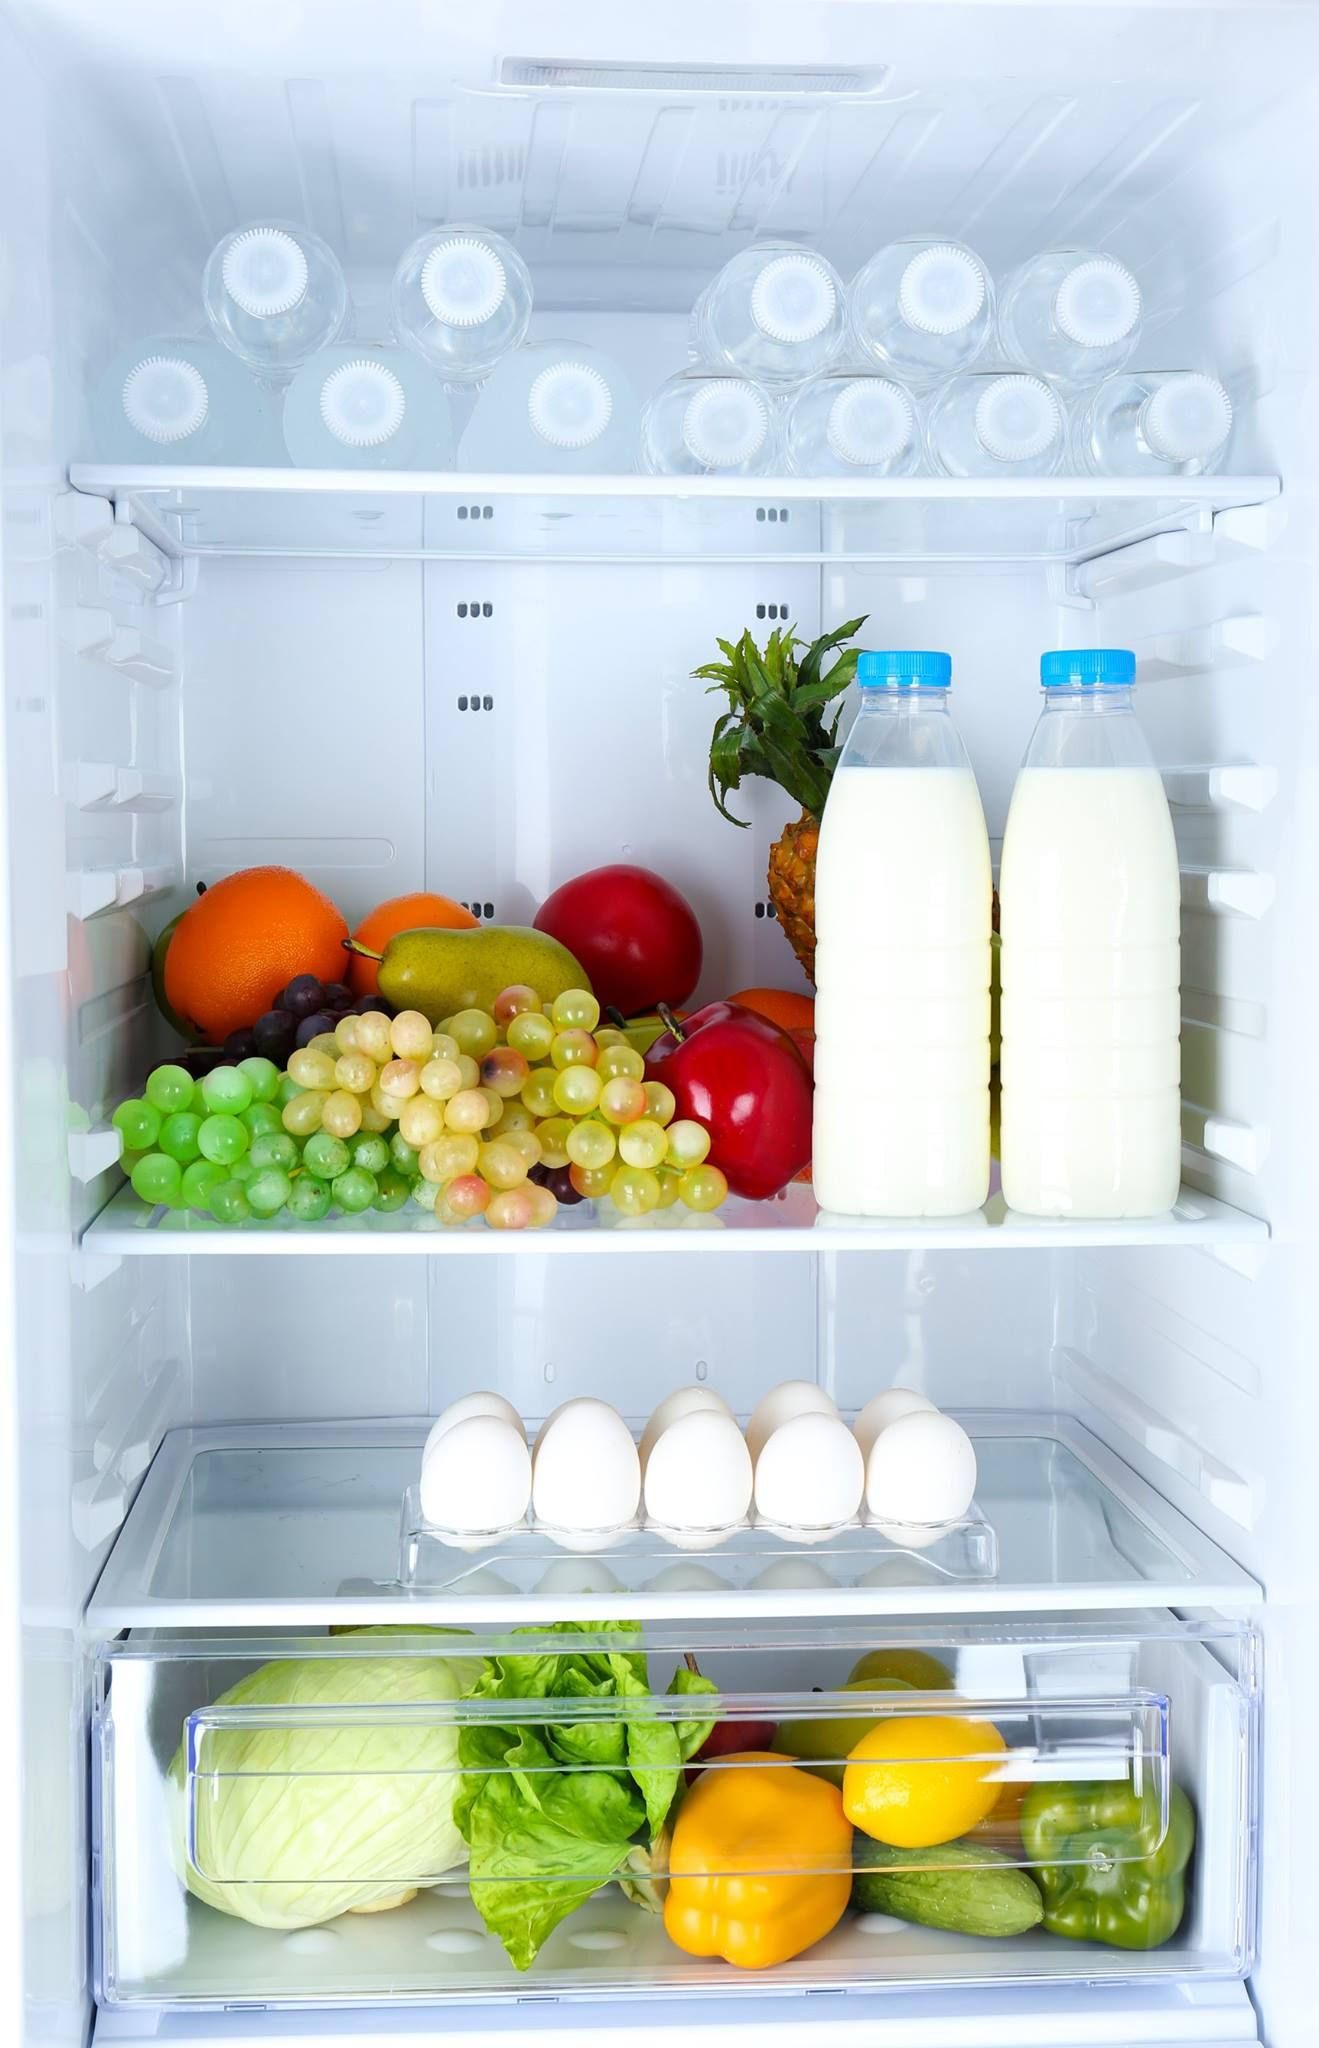 Did You Know That Every 5 Degree Increase In Refrigerator